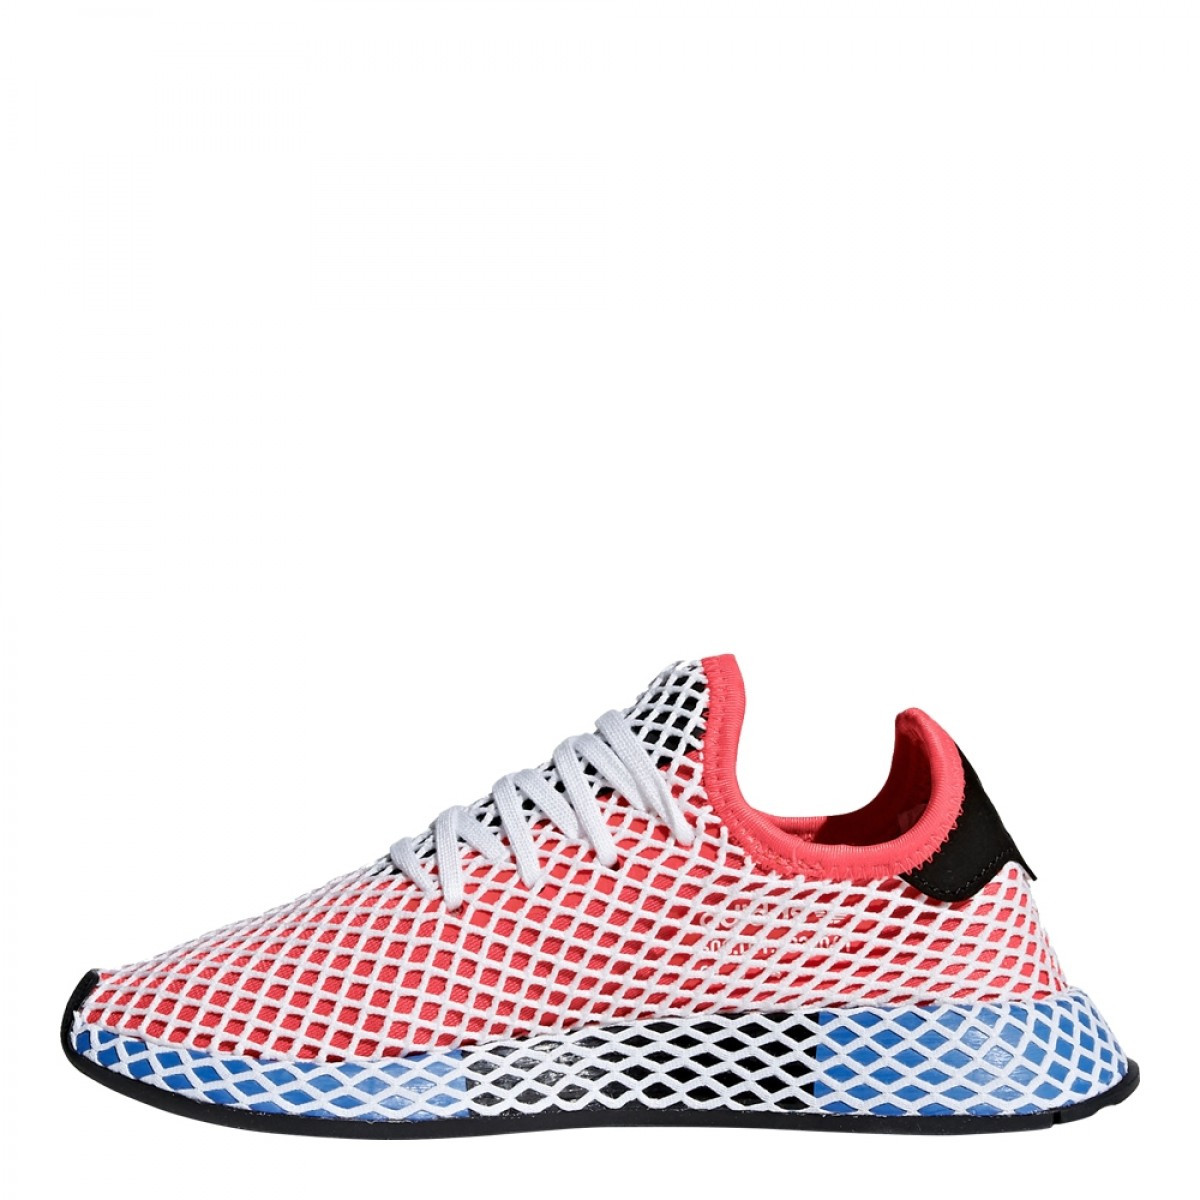 release date: 92dee 1a138 Basket adidas Originals Deerupt Runner Junior - Ref. DA9610. Loading zoom